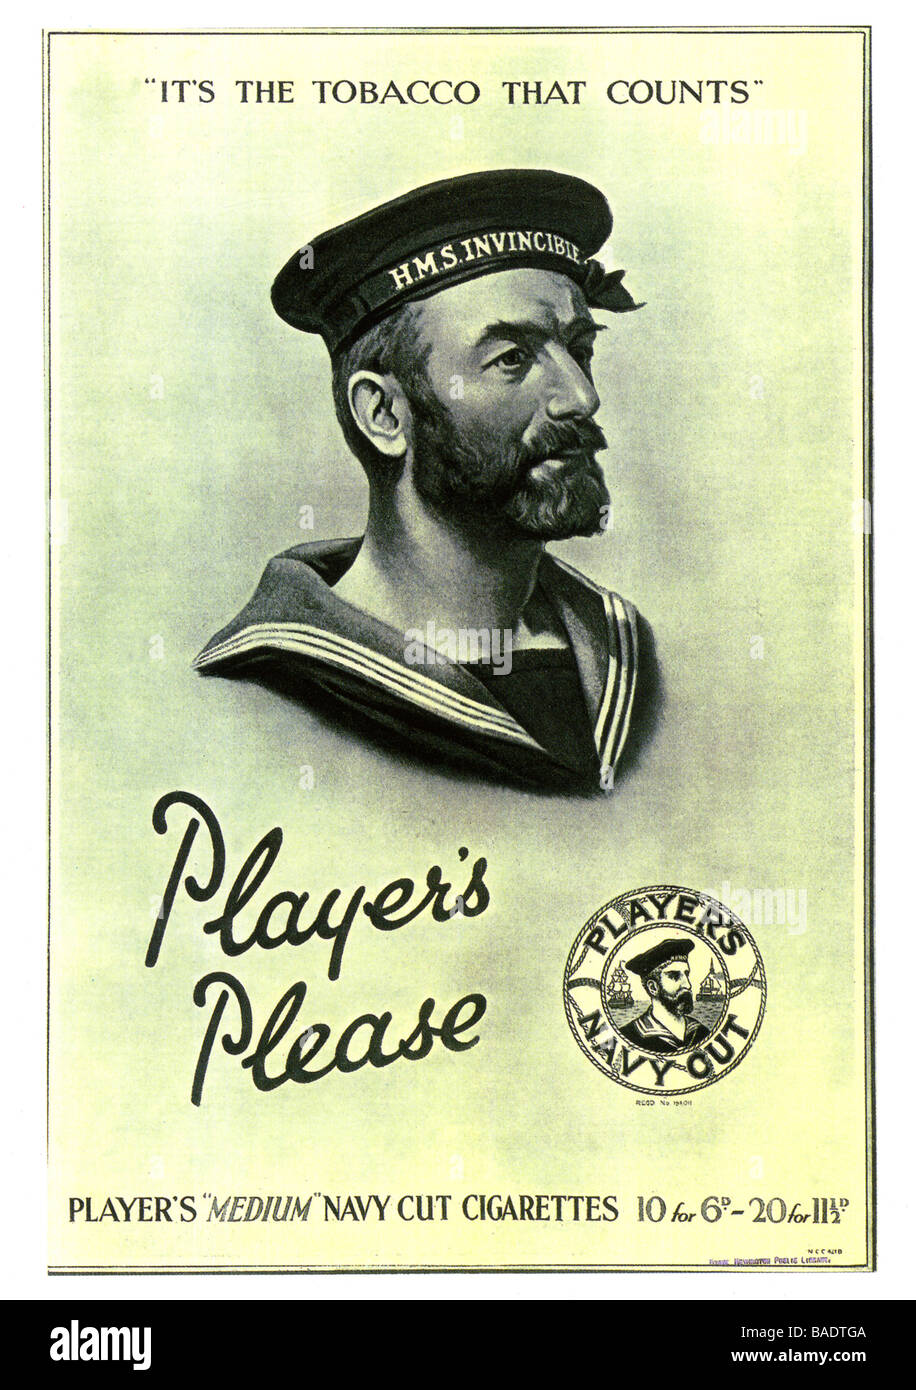 ADVERTISING Players Please cigarette advert from 1927 - Stock Image